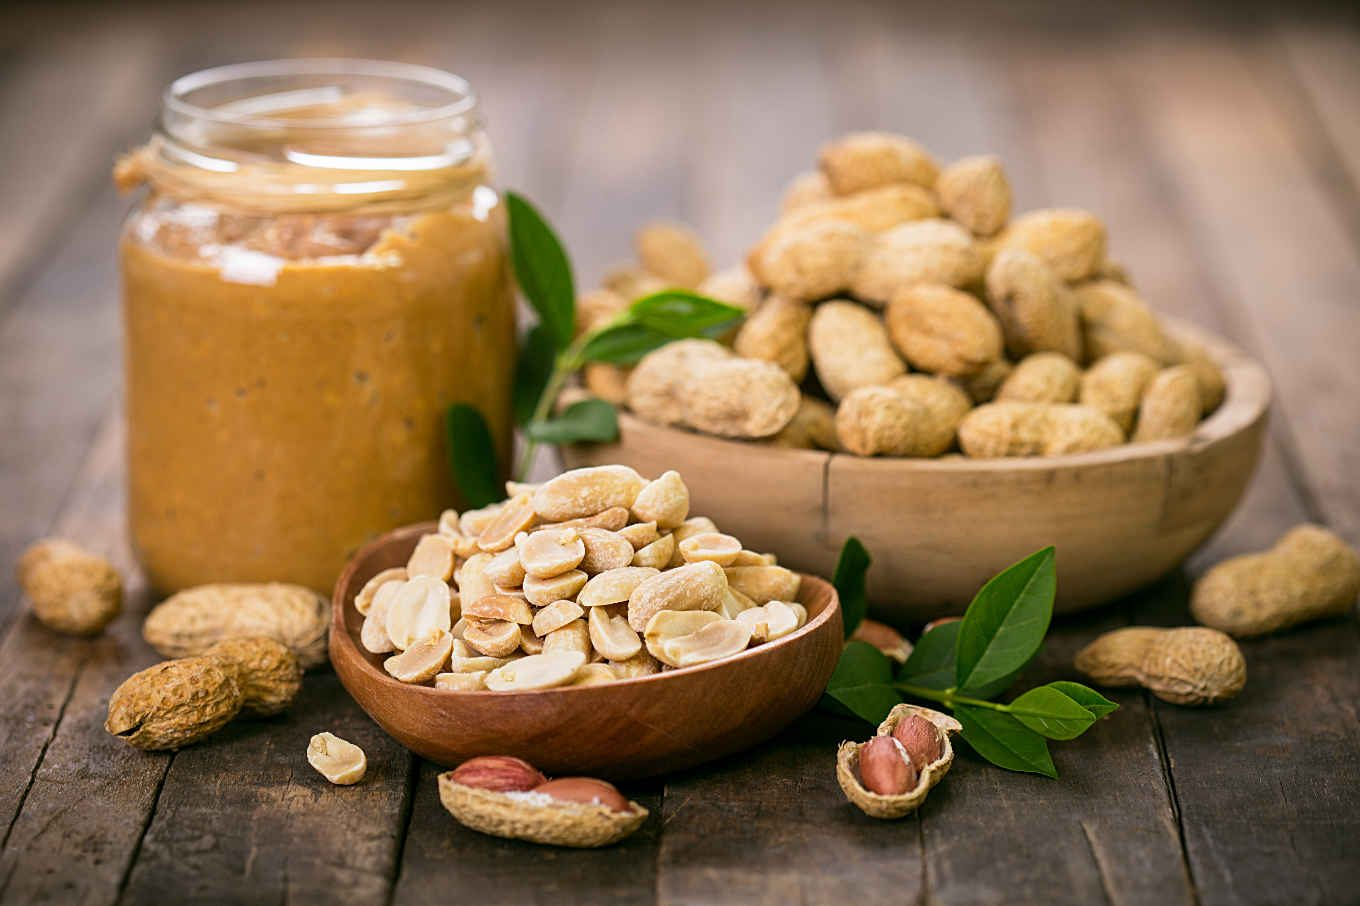 consider-nuts-instead-of-nut-butters-if-you-are-trying-to-lose-weight